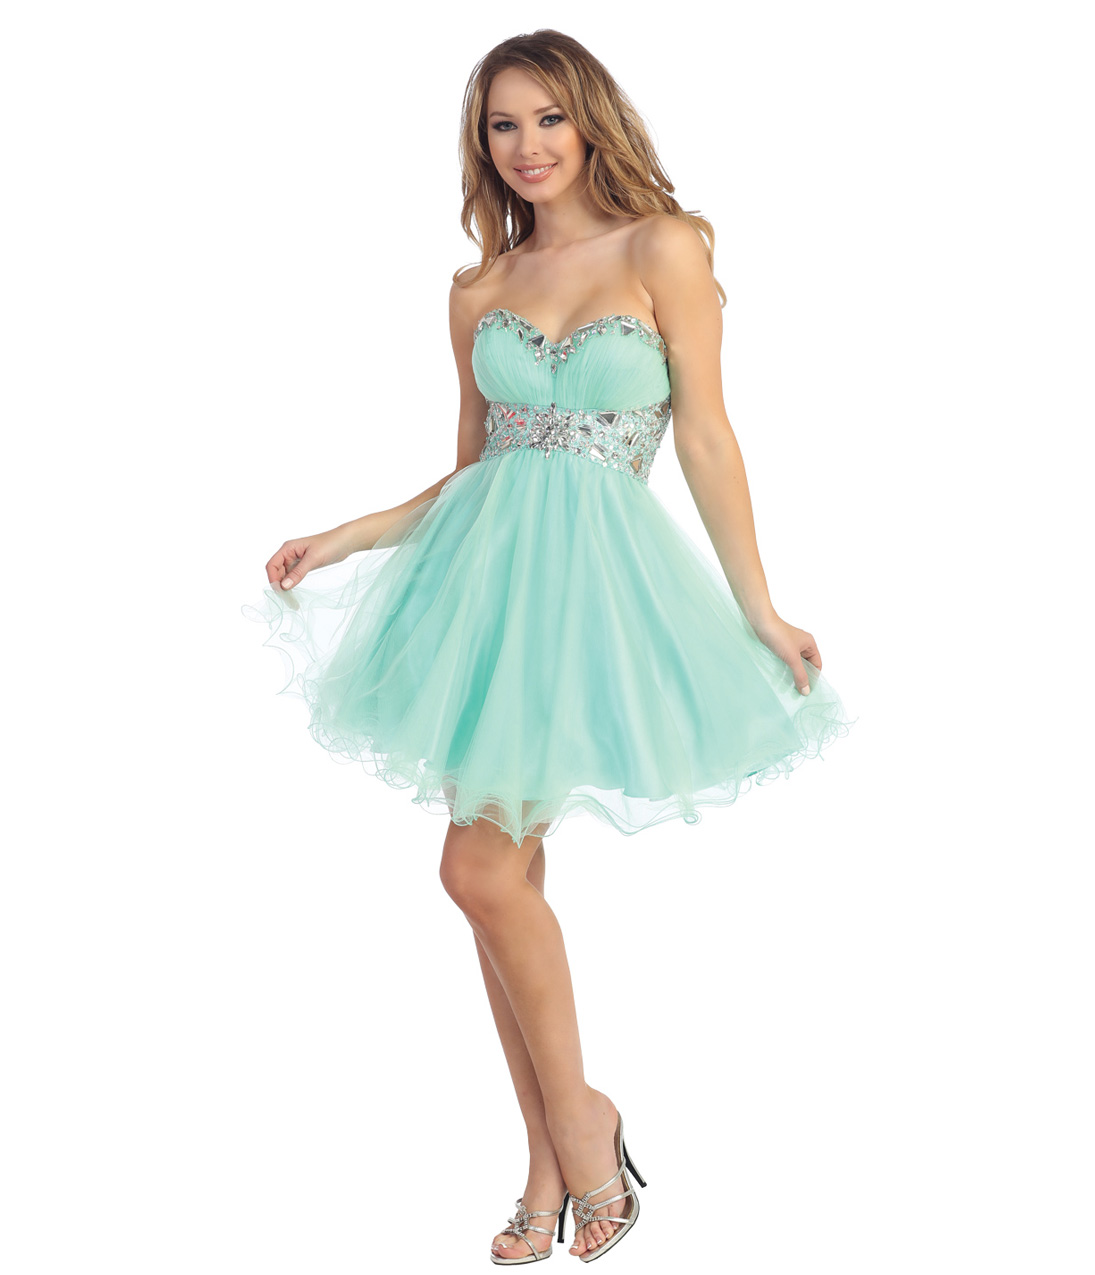 2014 Prom Dresses - Mint Tulle & Beaded Strapless Sweetheart Short Dress - Unique Vintage - Prom dresses, retro dresses, retro swimsuits.